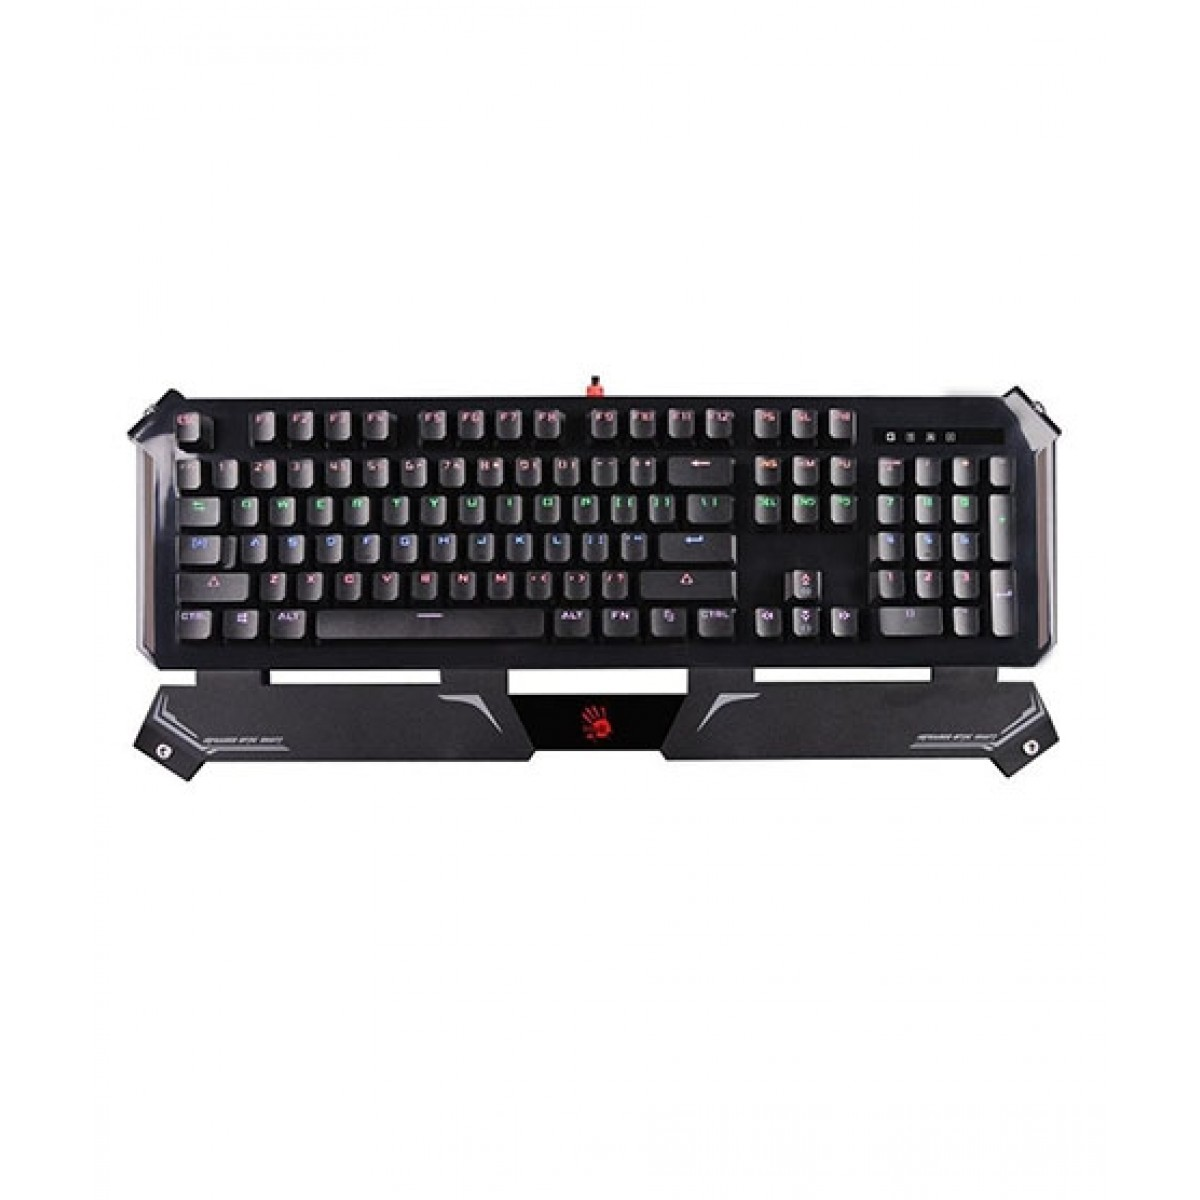 Image result for A4Tech Bloody B740S Mechanical Gaming Keyboard